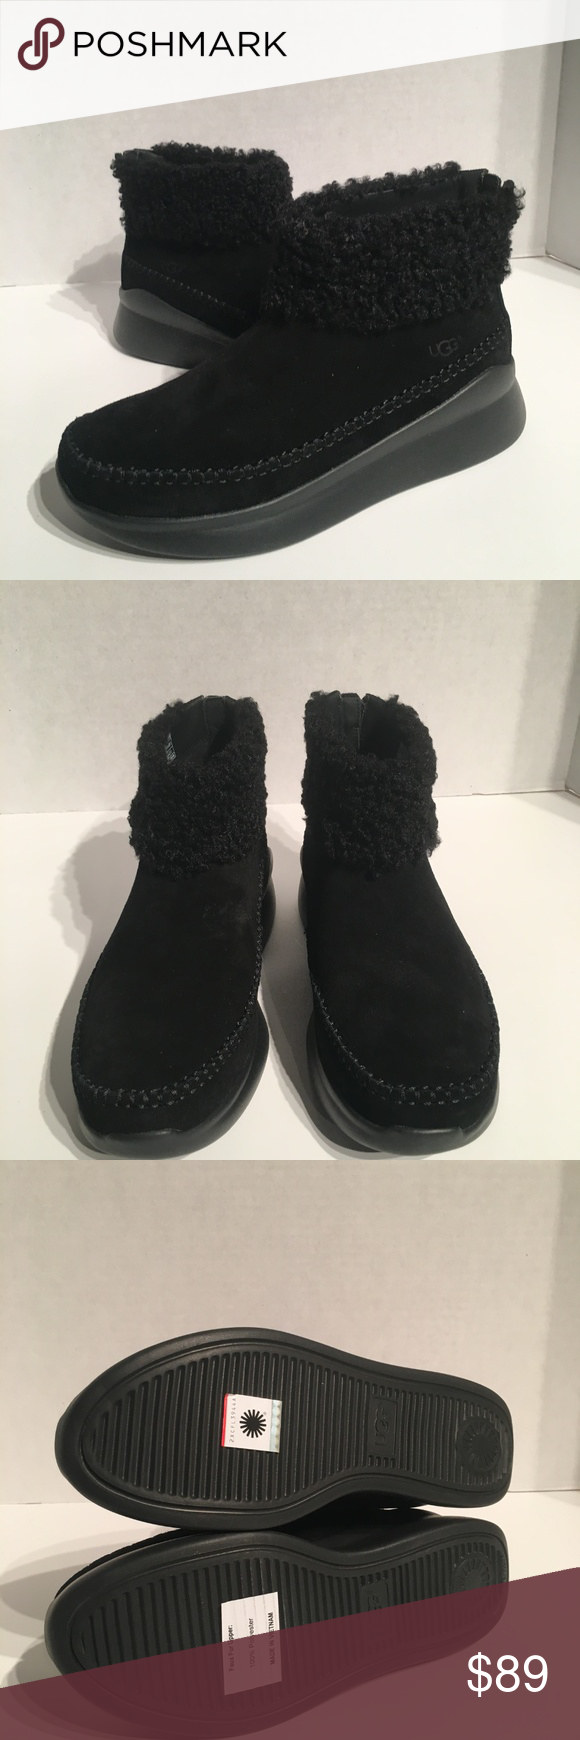 9bc447bb76d Ugg Montrose Zipper Black Wedge Sneaker New with box Buyers are ...